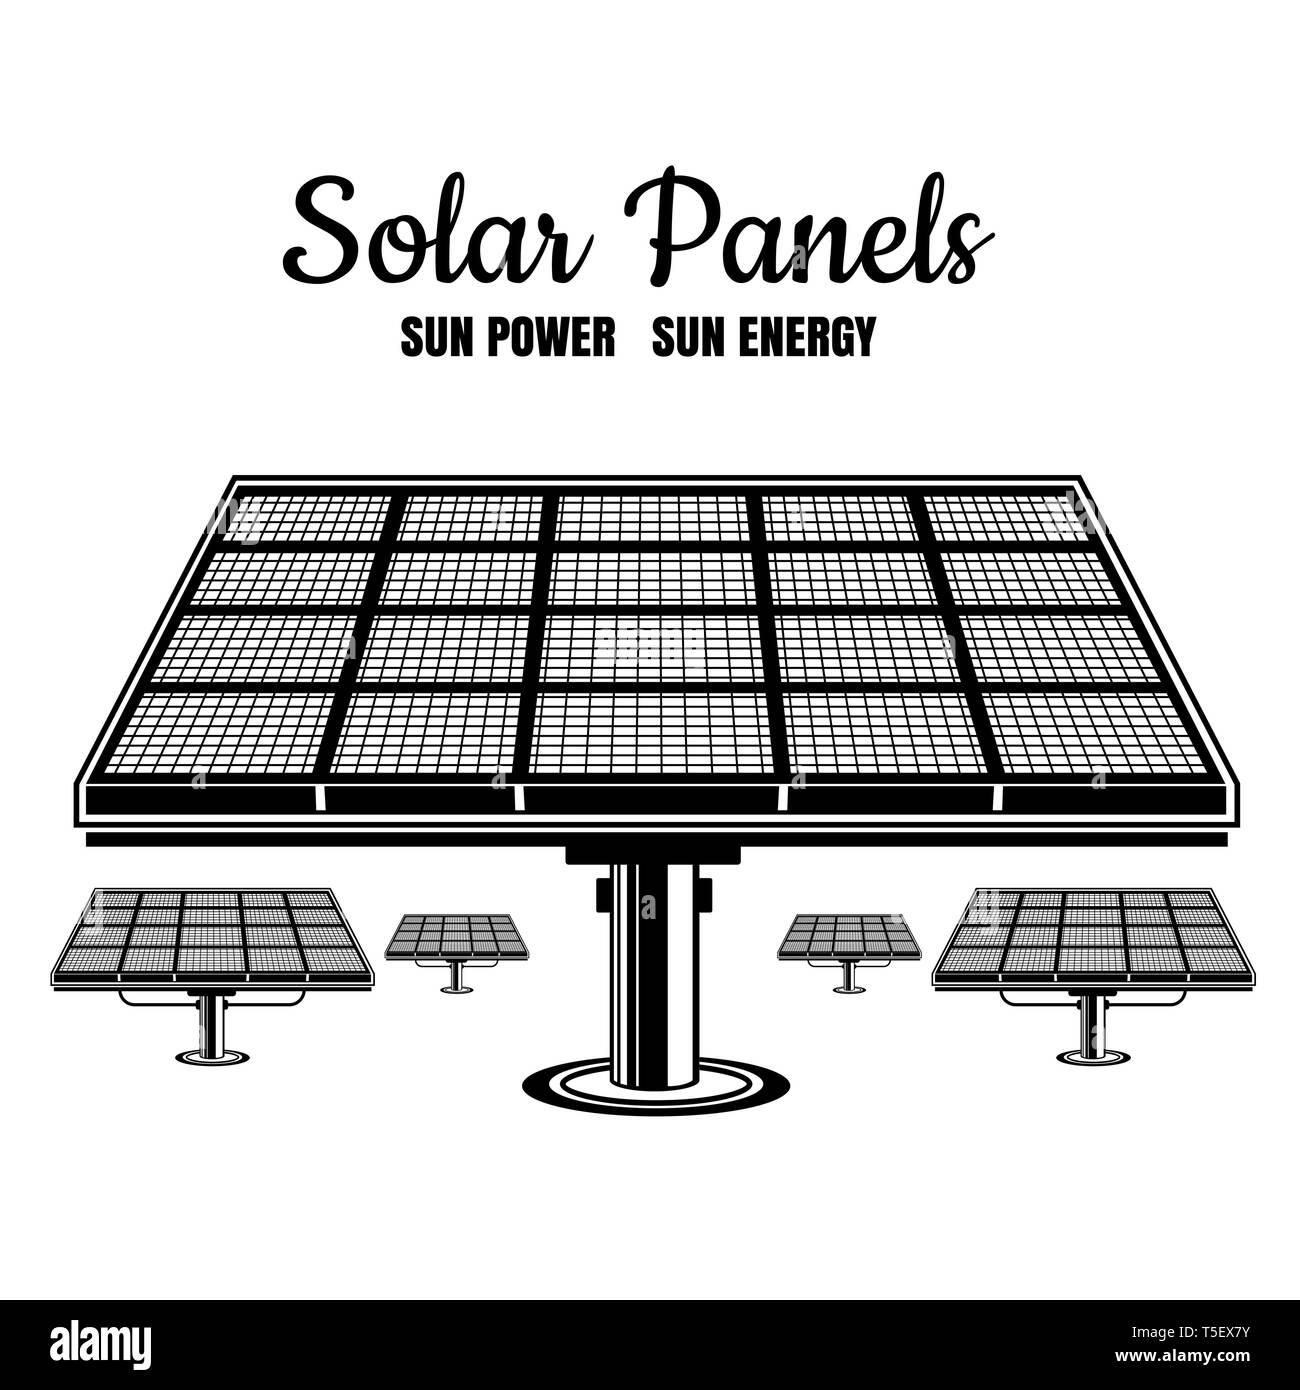 Energy of future, solar panels vector vintage illustration. Black silhouettes on white - Stock Image